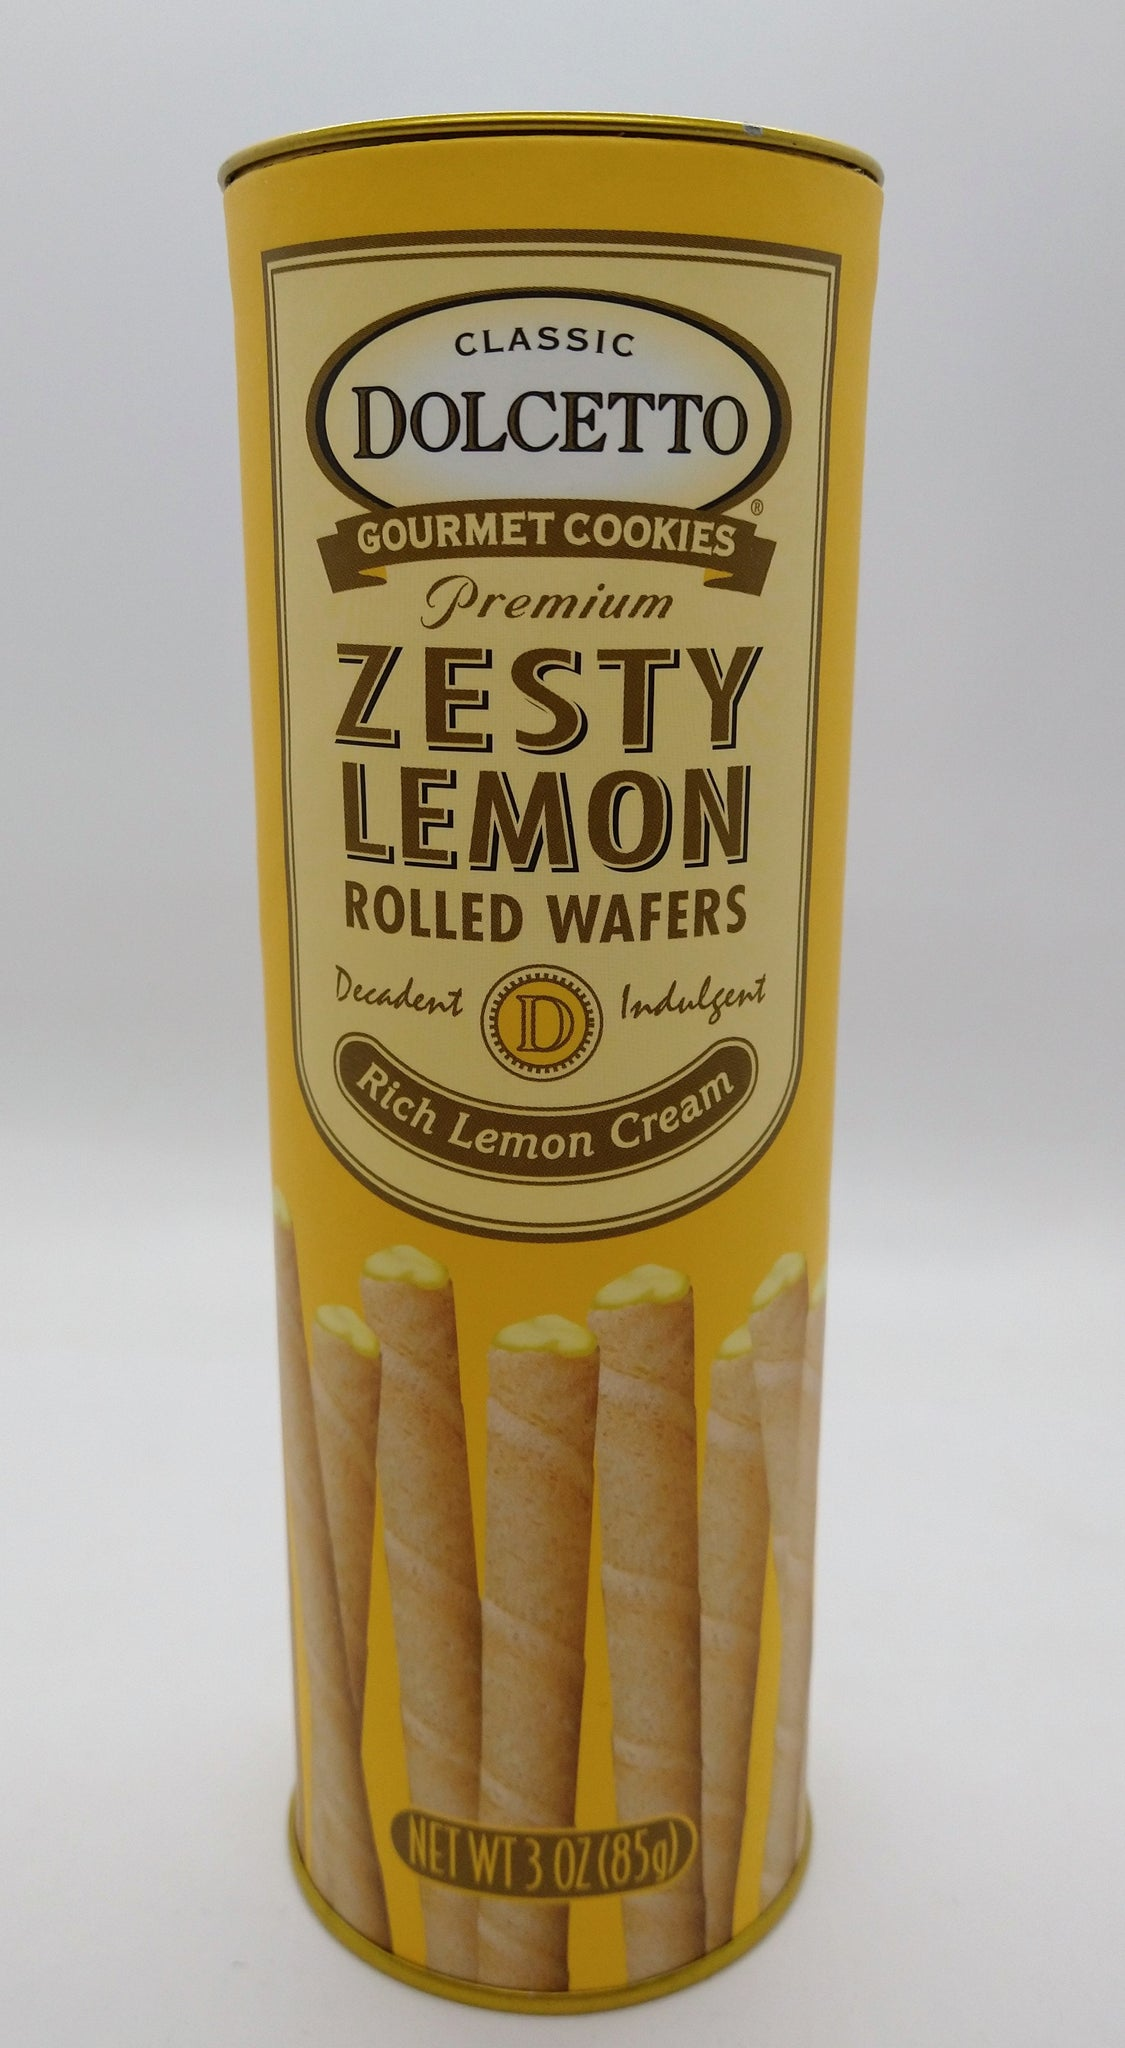 Dolcetto Rolled Wafers with Lemon Cream 85 gr / 3 oz